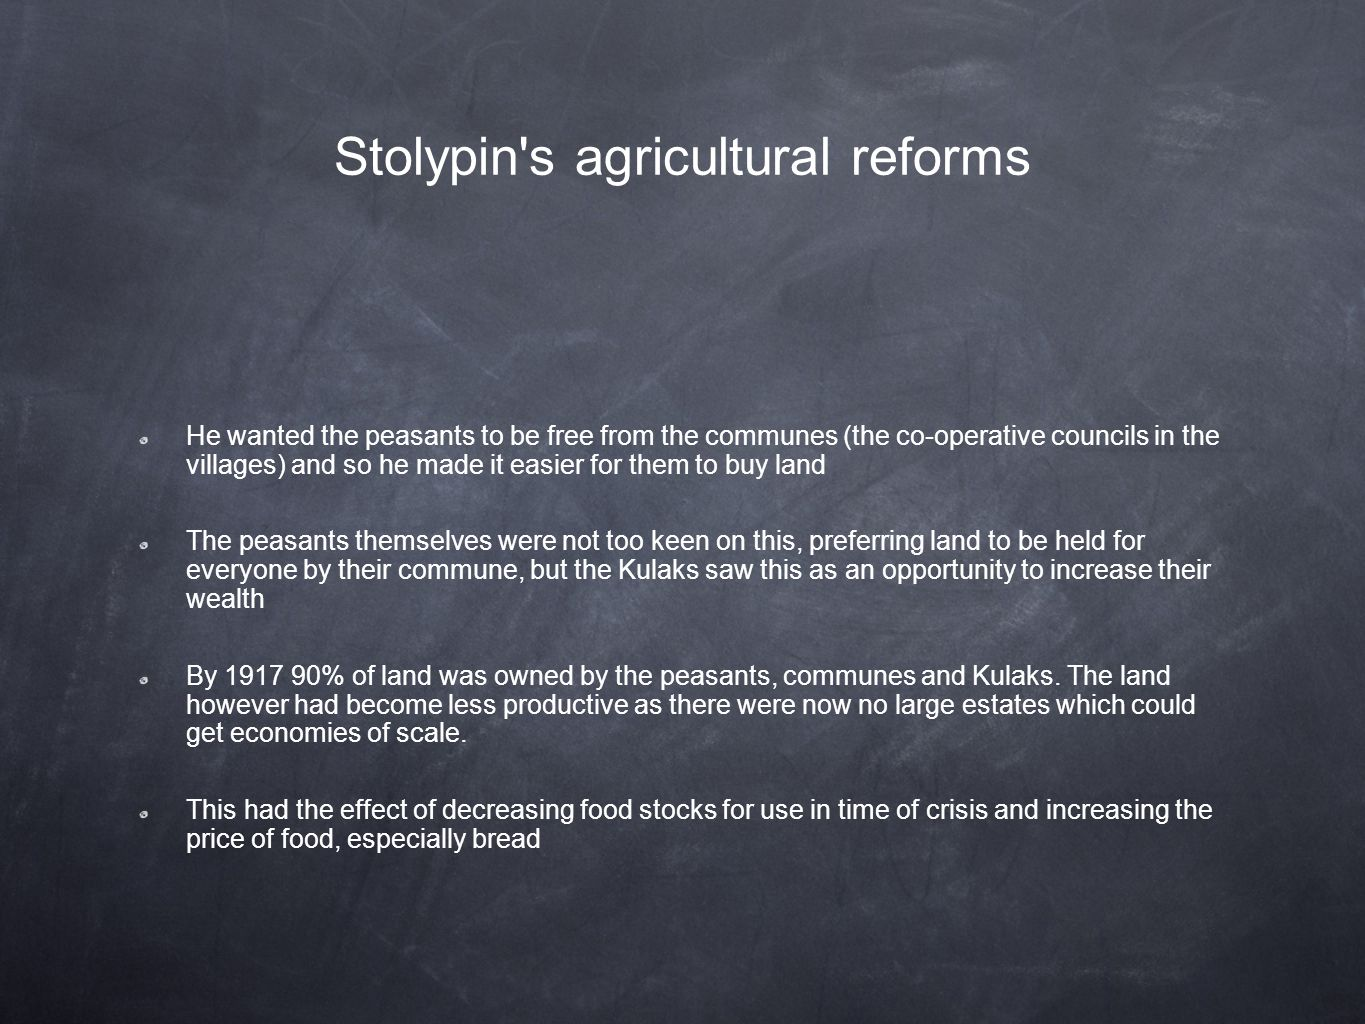 Stolypin s agricultural reforms He wanted the peasants to be free from the communes (the co-operative councils in the villages) and so he made it easier for them to buy land The peasants themselves were not too keen on this, preferring land to be held for everyone by their commune, but the Kulaks saw this as an opportunity to increase their wealth By 1917 90% of land was owned by the peasants, communes and Kulaks.